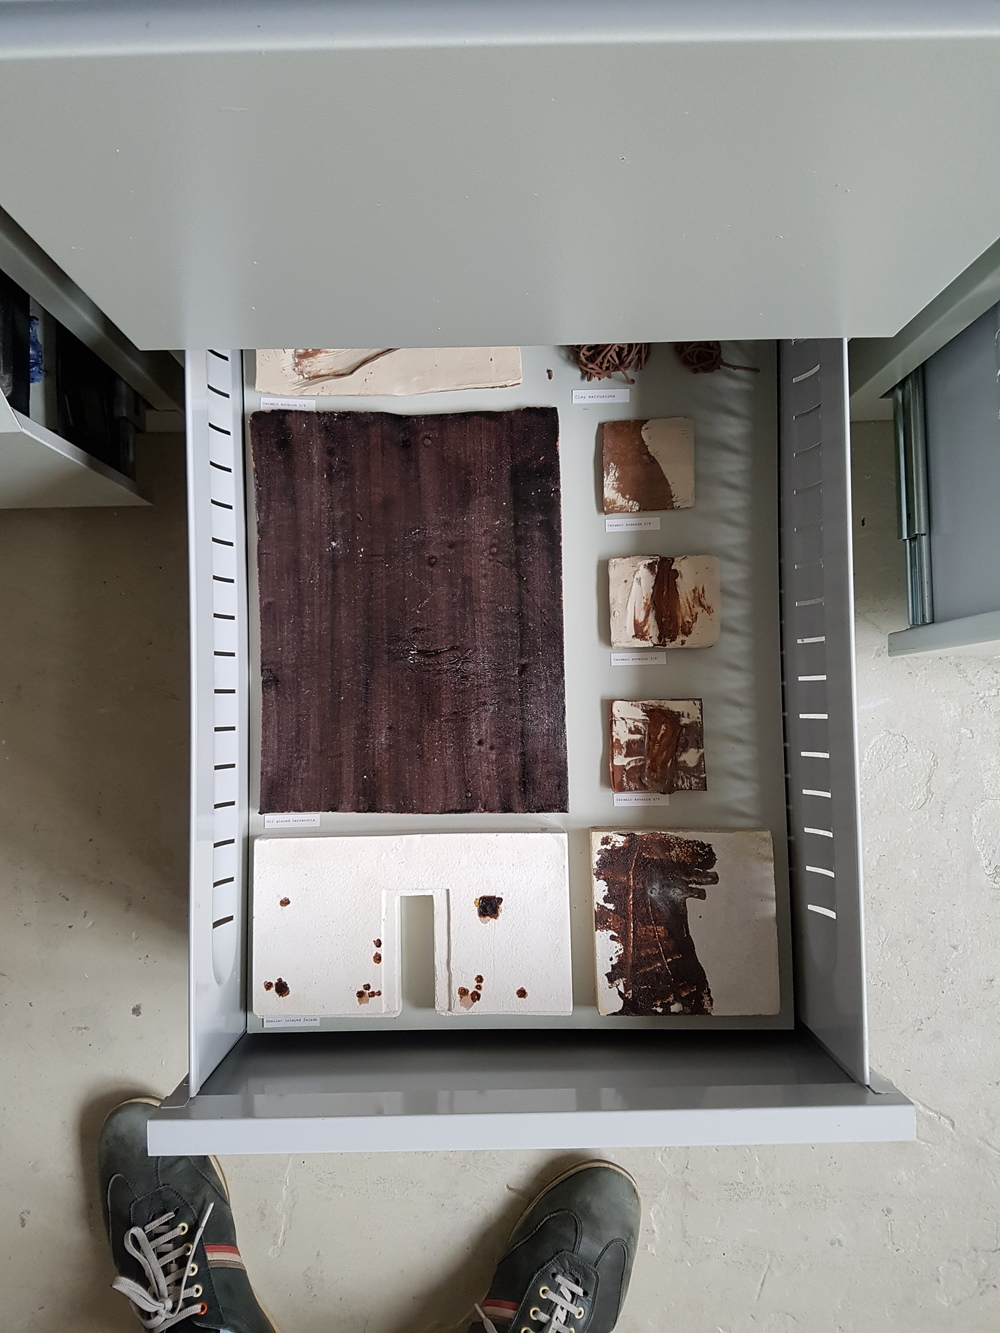 Some works were even interactive where you can open the cabinet to see some models... I am assuming possibly developmental ones? Overall it was really fun and nice experience personally really liked it.  어떤 유닛은 이렇게 아래에 서랍을 열어서 디벨롭 모델등을 전시하는 곳도 있더군요. 참신하고 재밌던 아이디어 같았습니다.